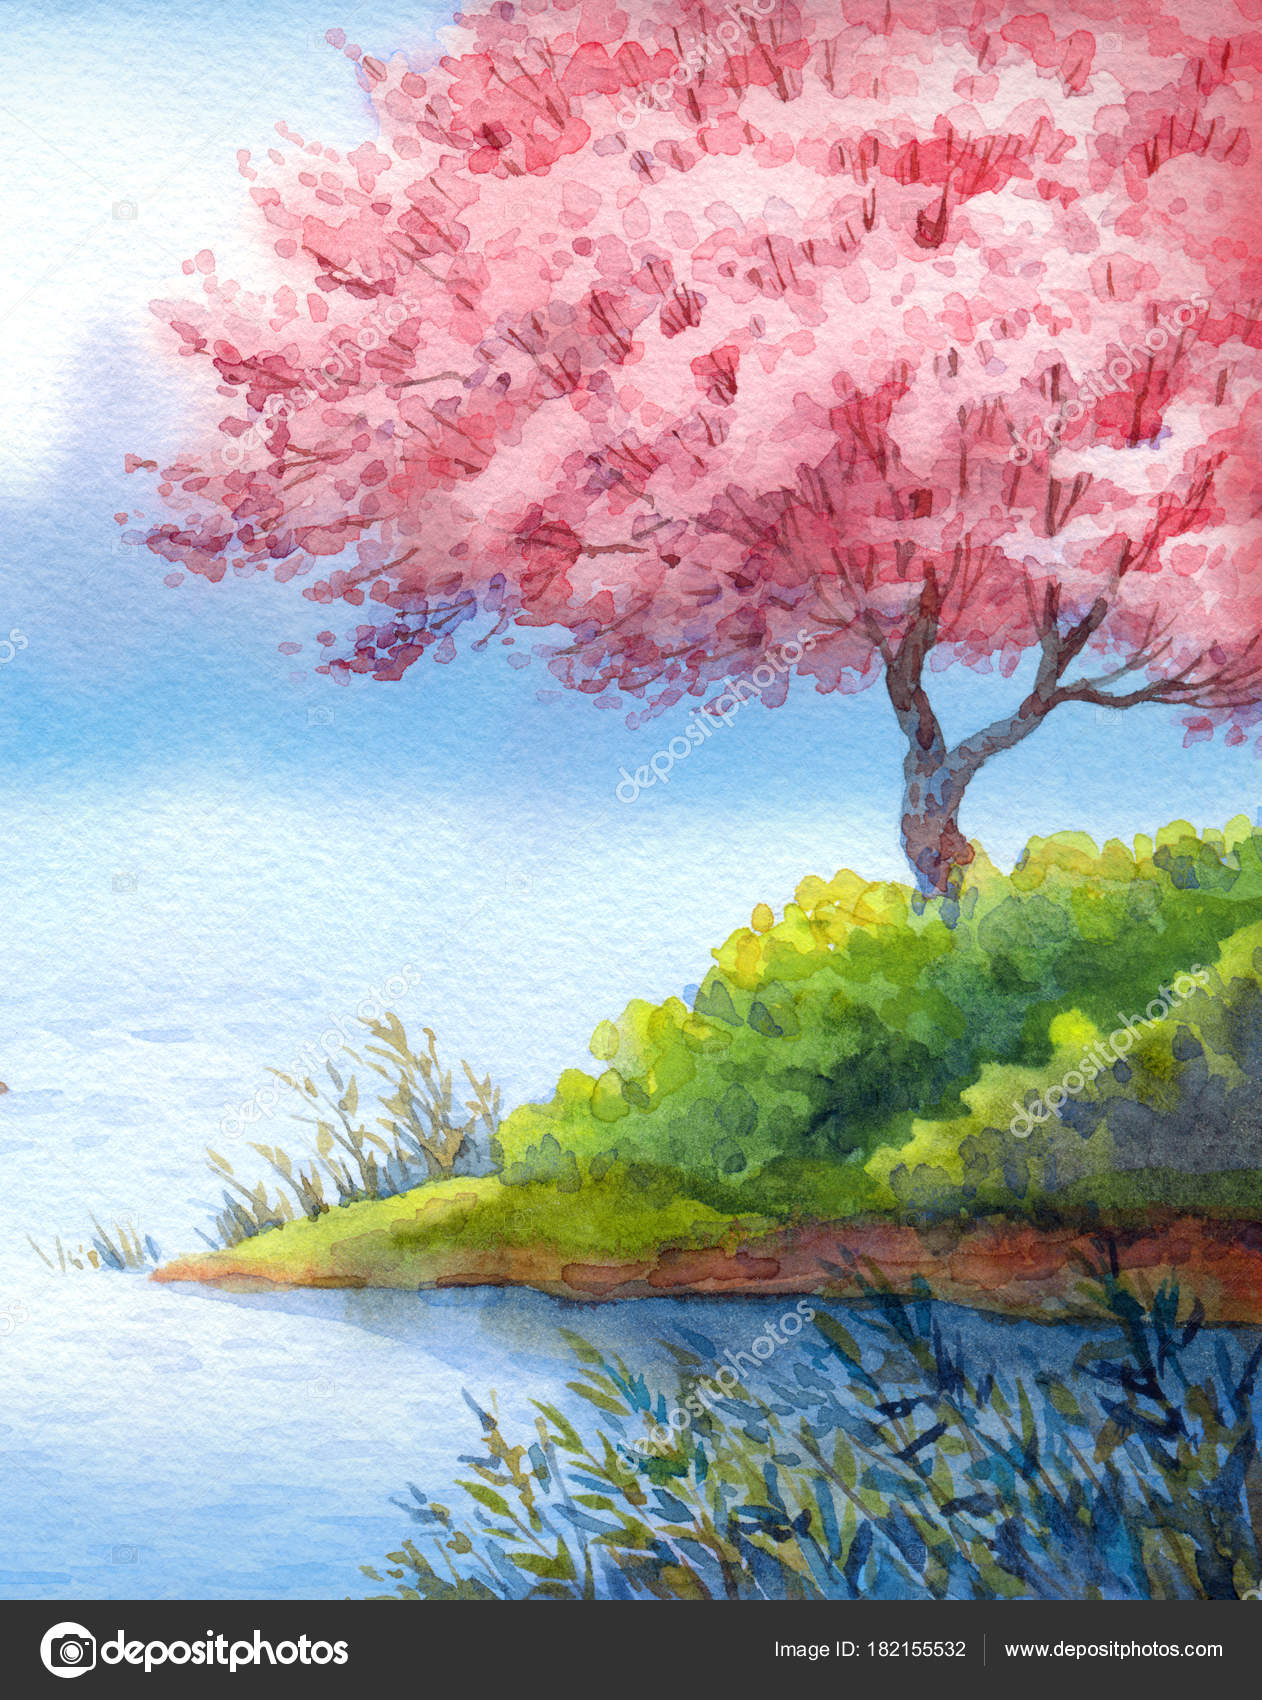 Spring watercolor landscape flowering trees over lake stock photo colorful handmade bright romantic watercolour on paper backdrop card with space for text prime elegant fragrant fruit seedlings in bushes on island over izmirmasajfo